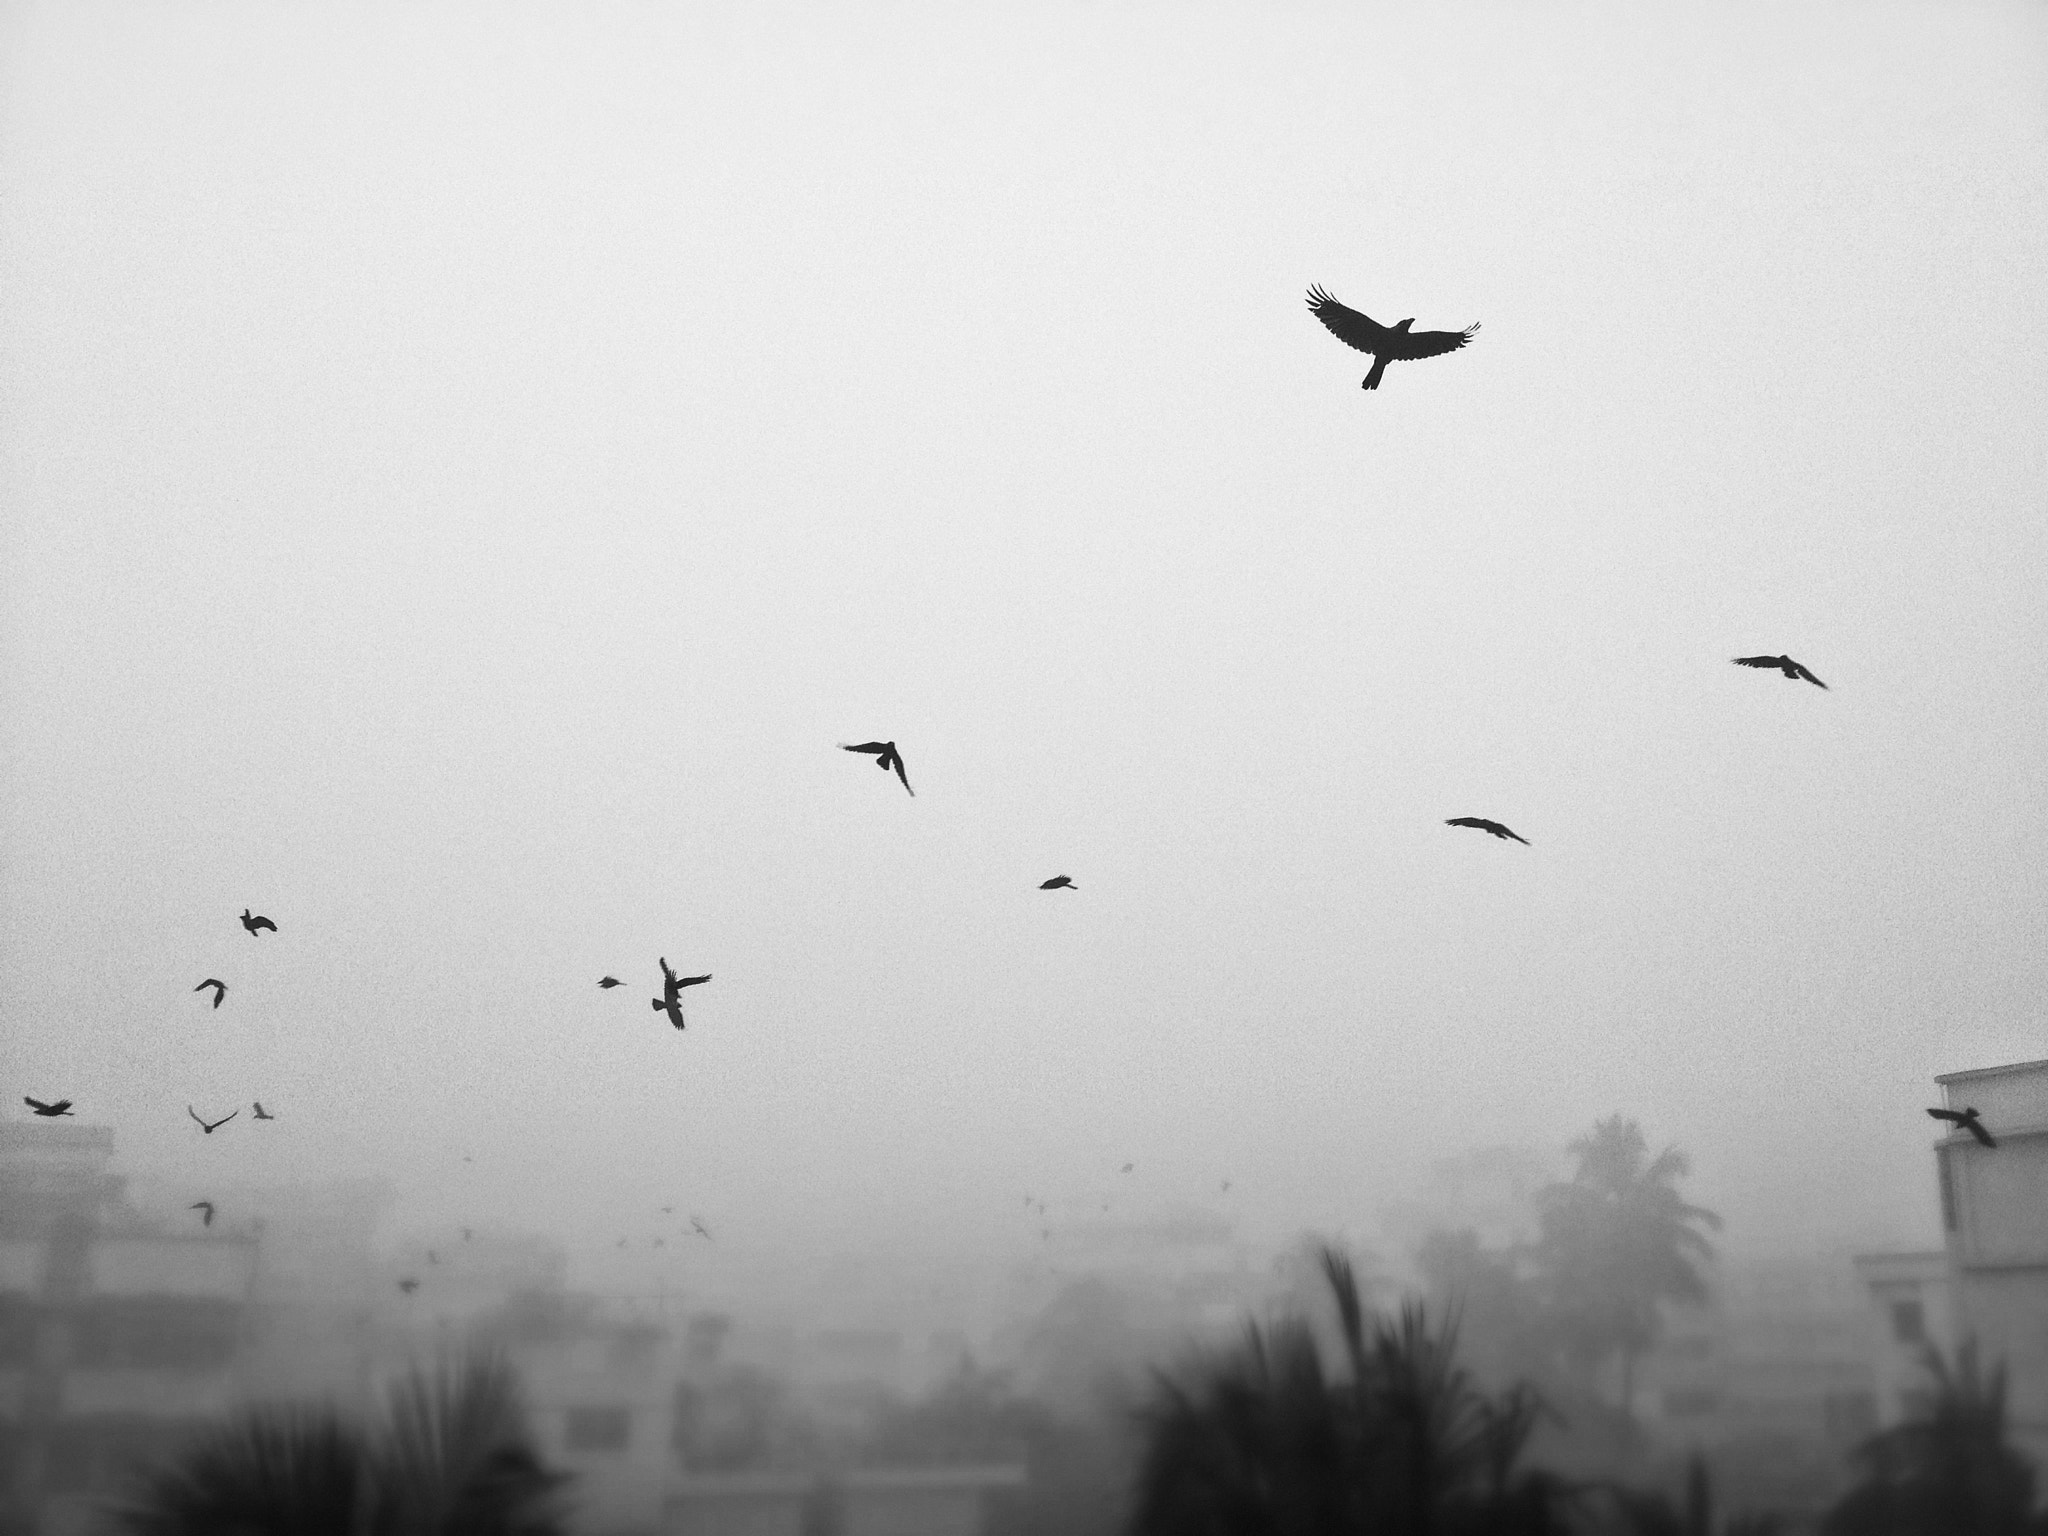 Photograph winter in my city ... foggy morning by amir  hamja on 500px